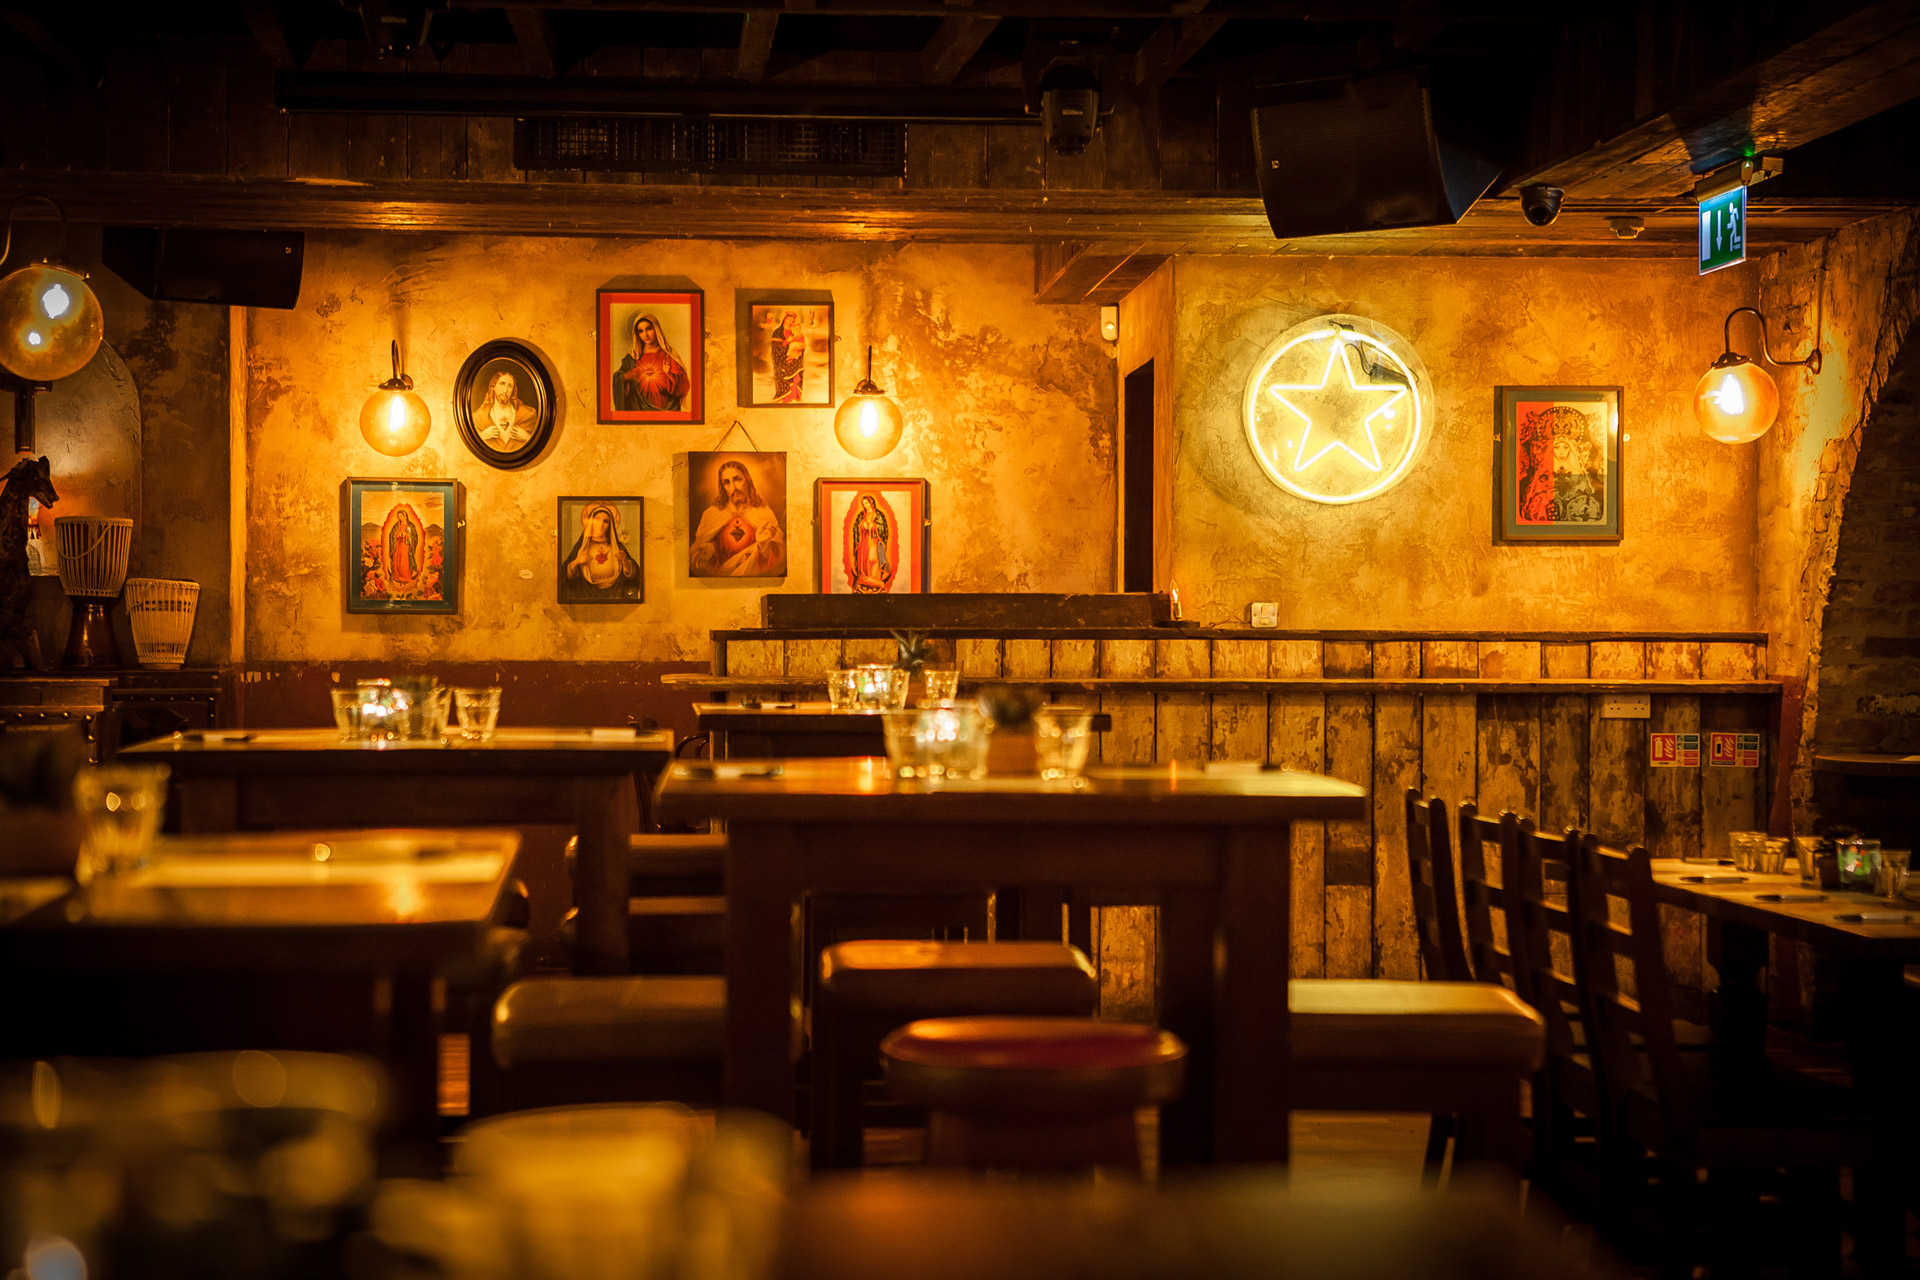 Our Riad light fixtures add a golden glow to the rustic interior of Xico, Dublin